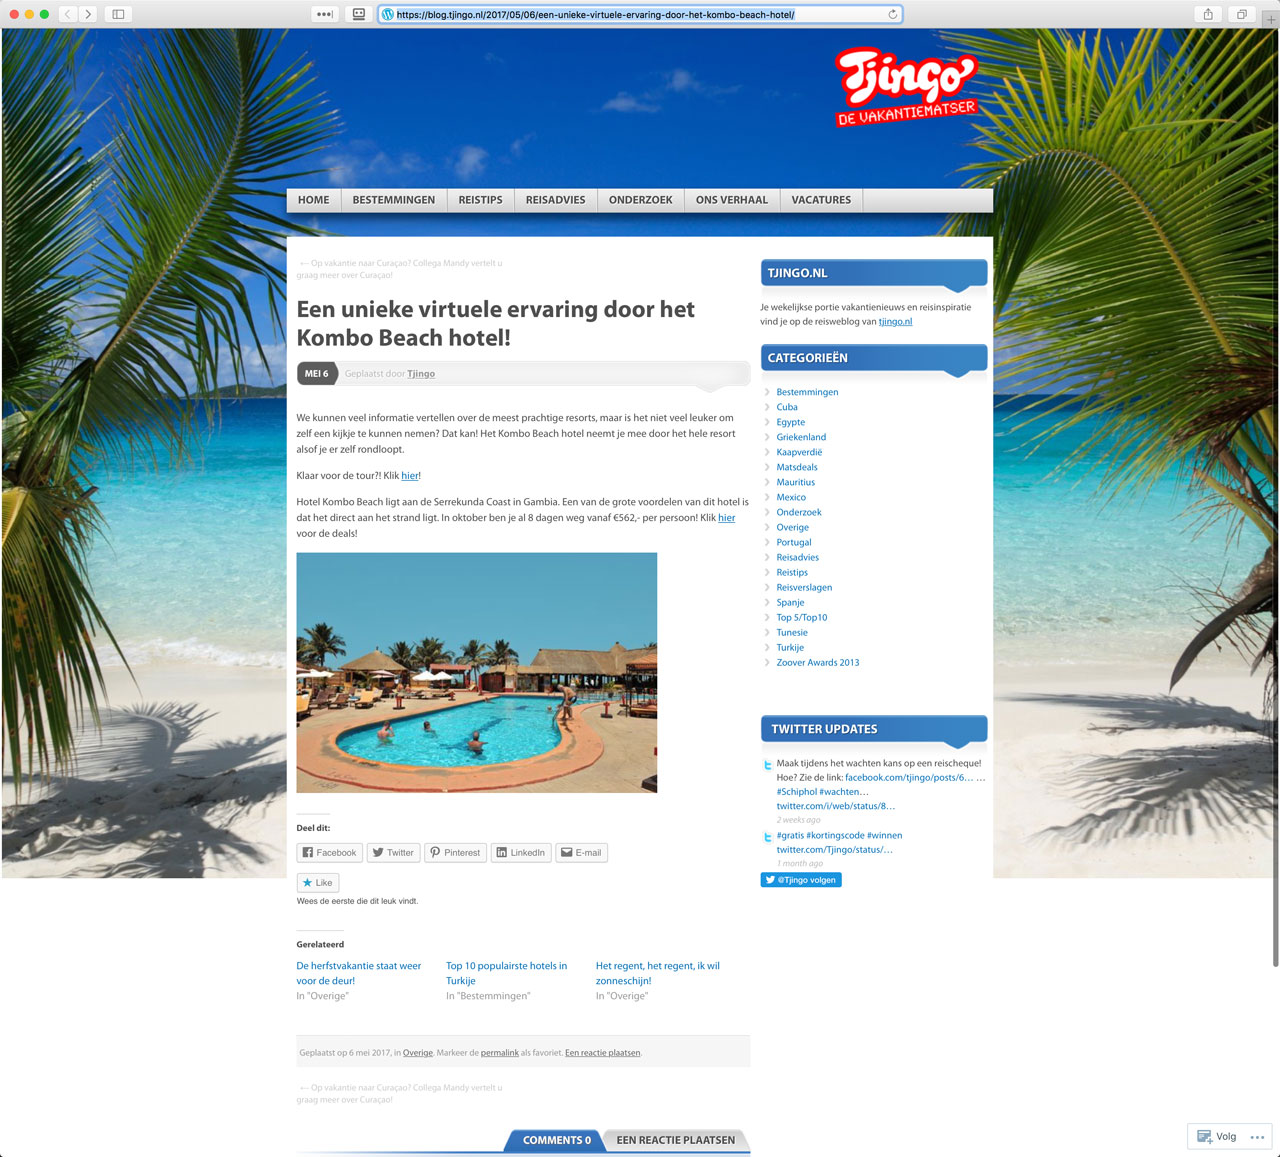 Virtual Tour of Kombo Beach Hotel (Gambia) on Tjingo